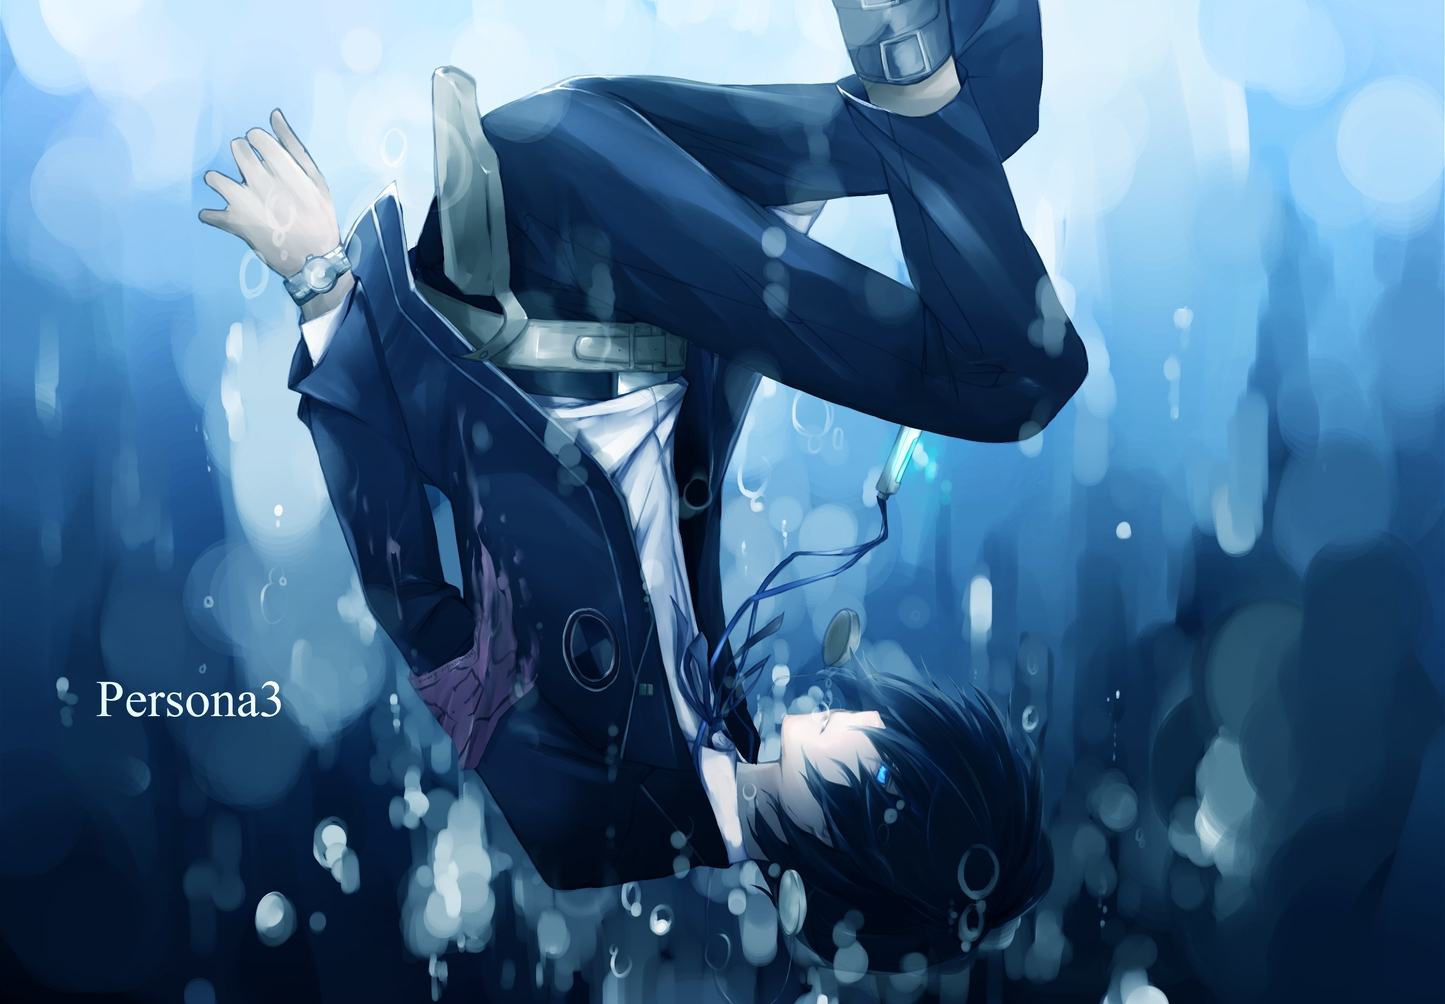 Persona3 Wallpaper 4k Thanatos: Persona 3 Wallpaper And Background Image